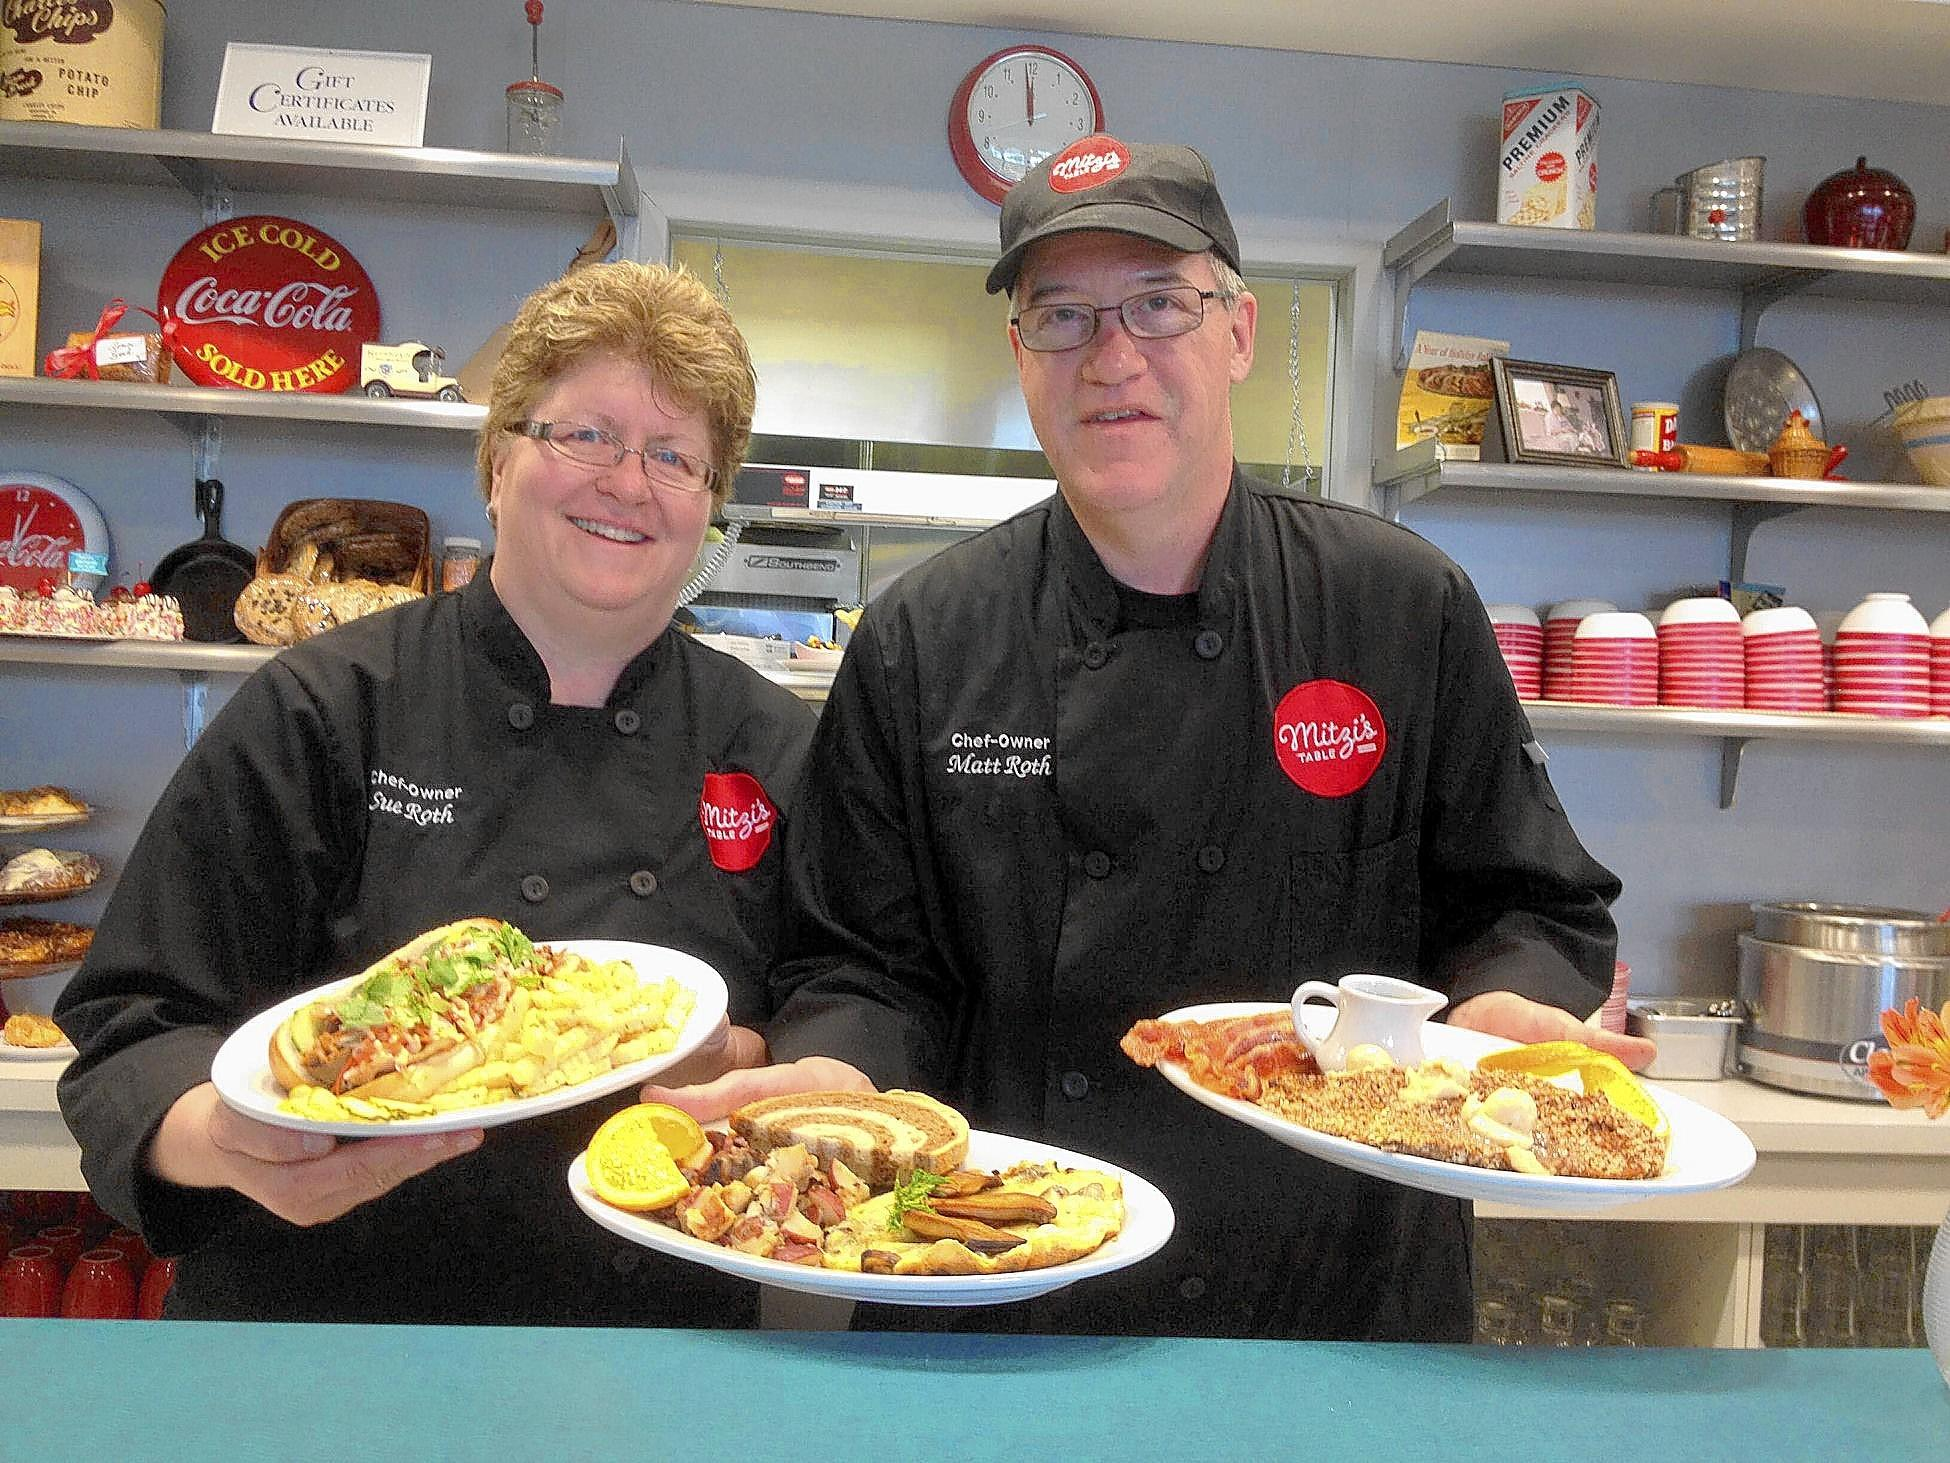 Chefs Susan and Matt Roth, owners of Mitzi's Table in Bethlehem, with their banh mi sandwich, best oatmeal crusted French toast and Primordia Farms wild mushroom frittata.